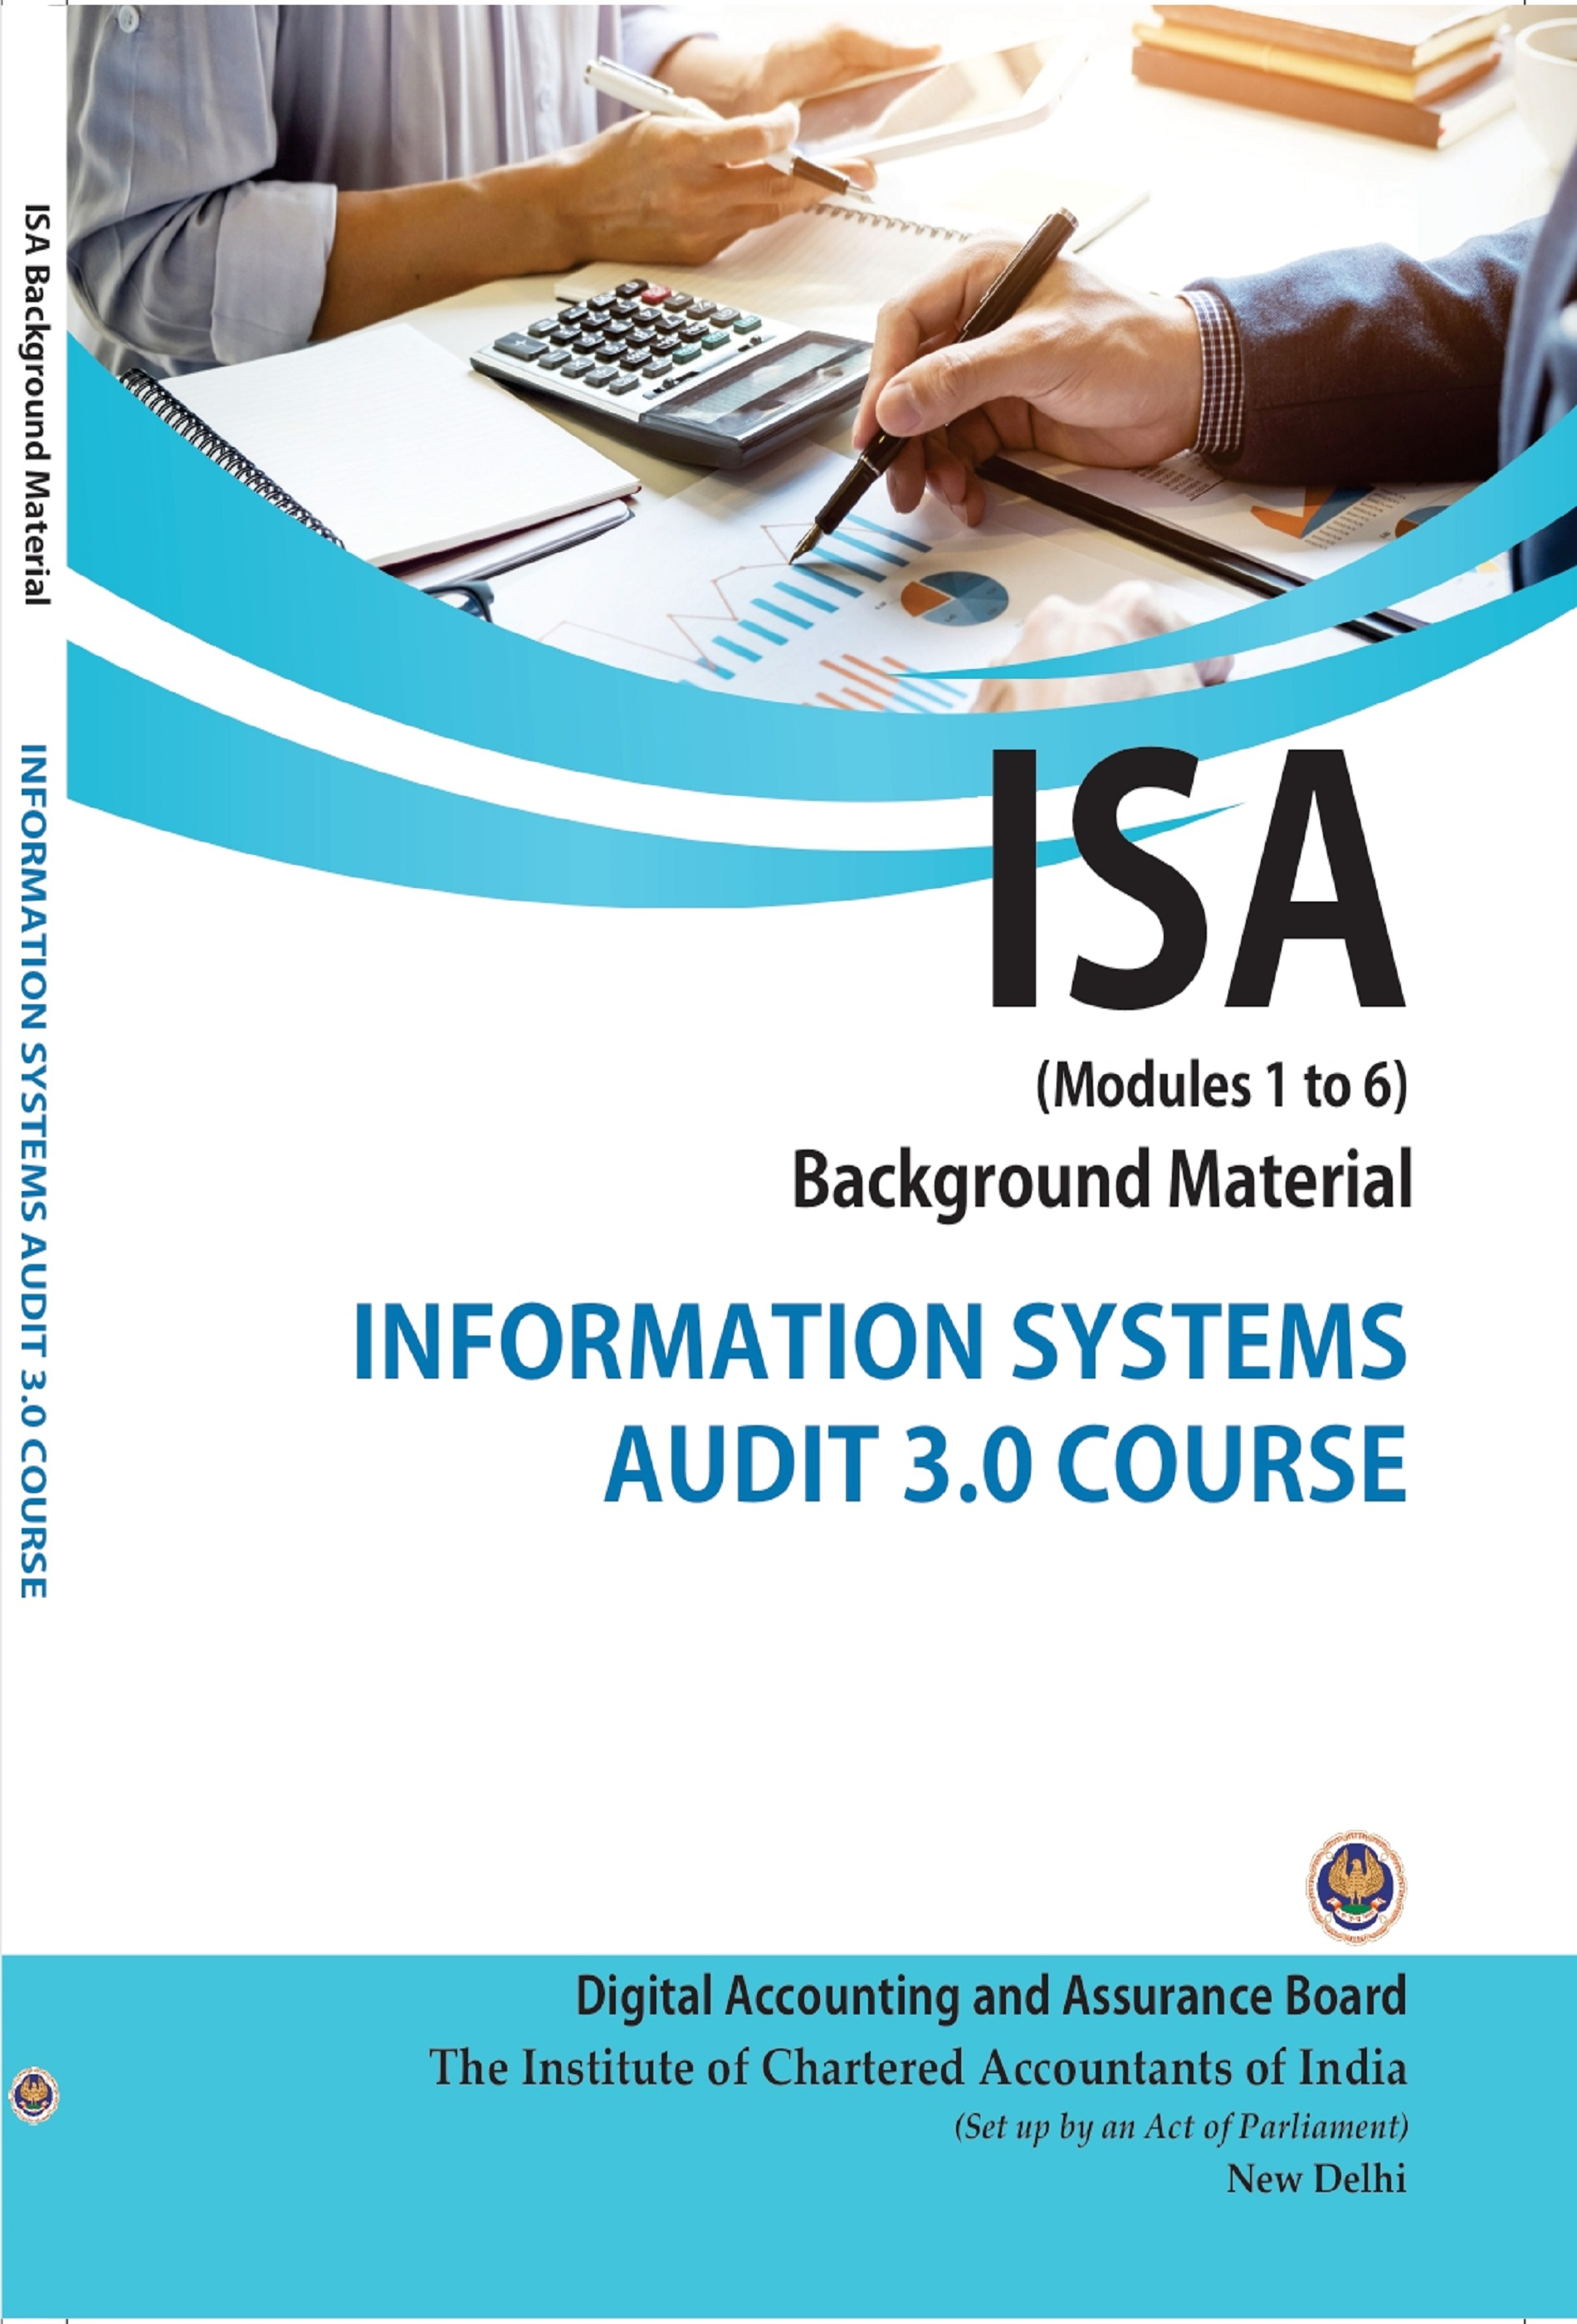 ISA Background Material: Information Systems Audit 3.0 Course (Module 1 to 6) & Lab Manuals and Case Studies (August, 2020)